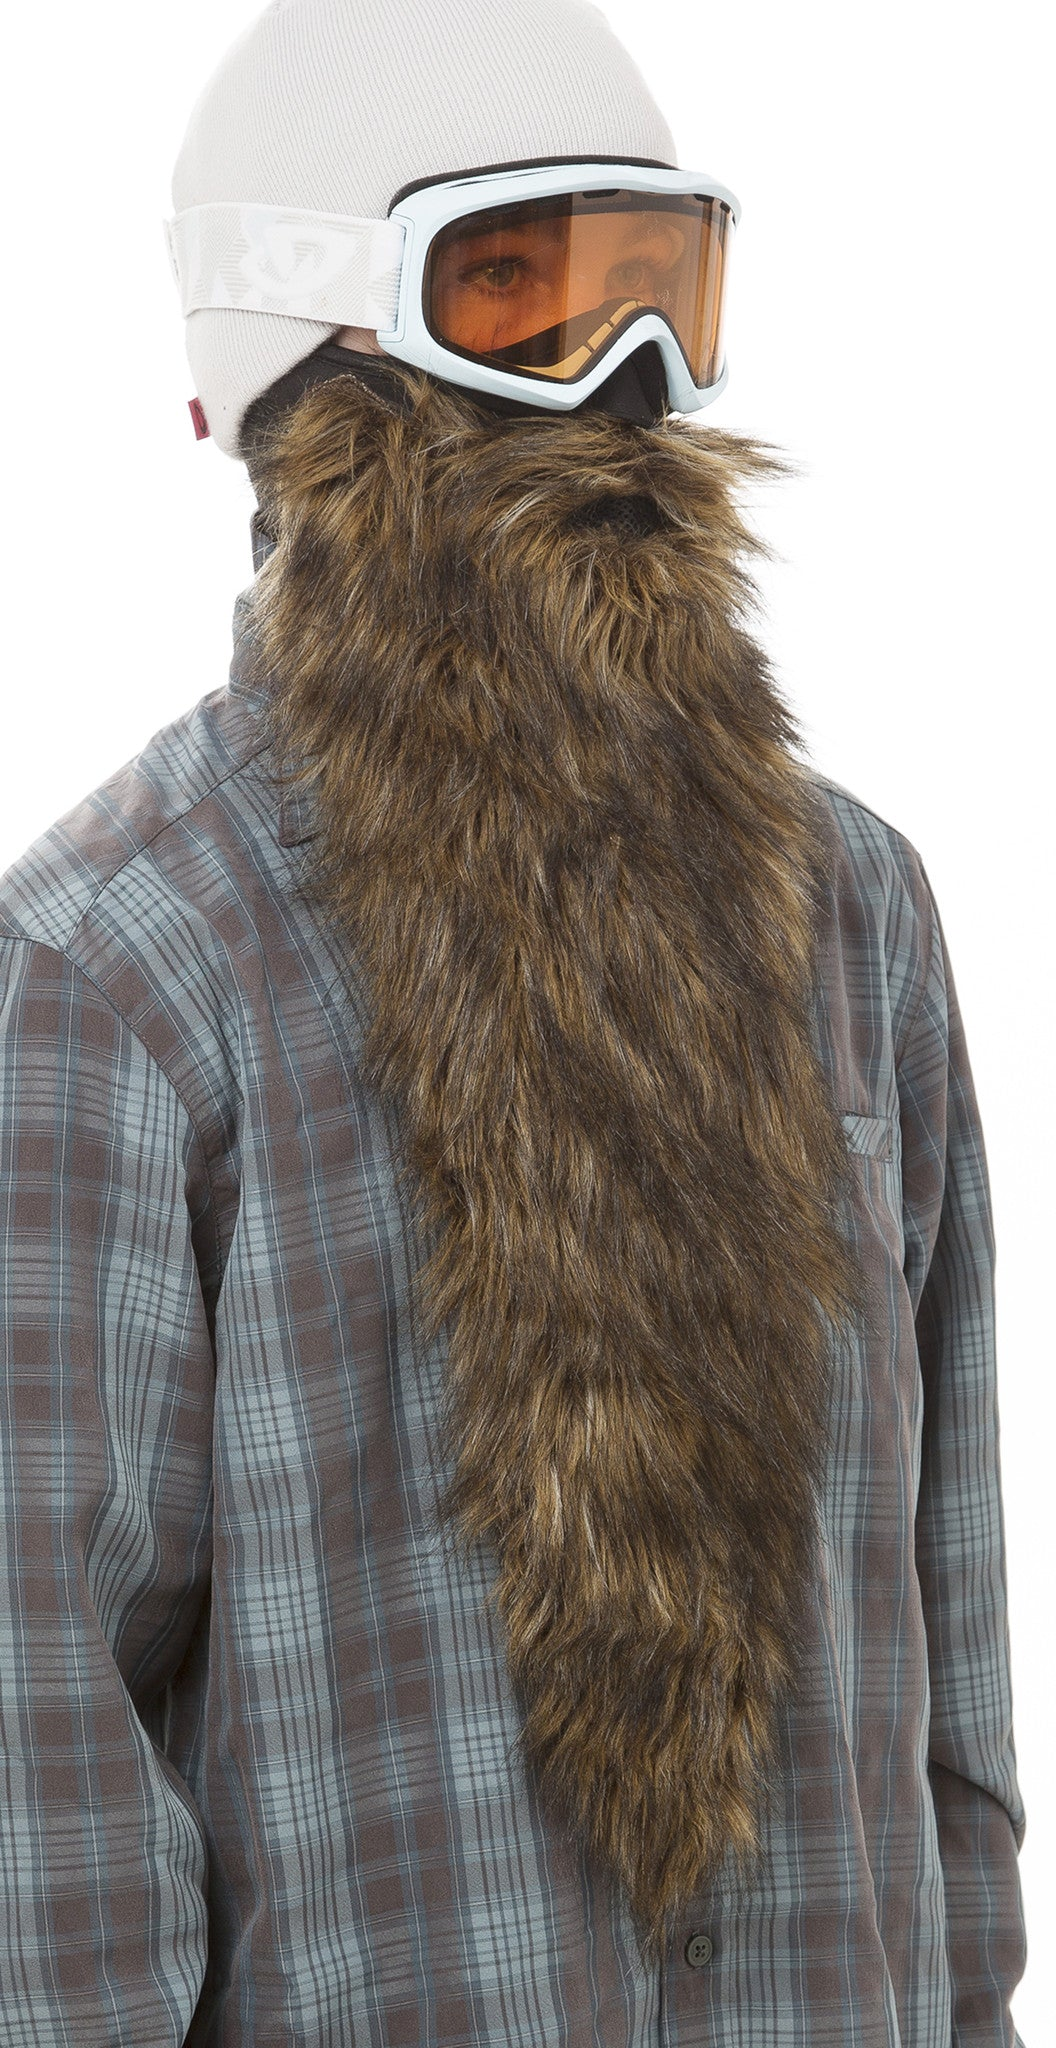 Beardski Big Country Skimask